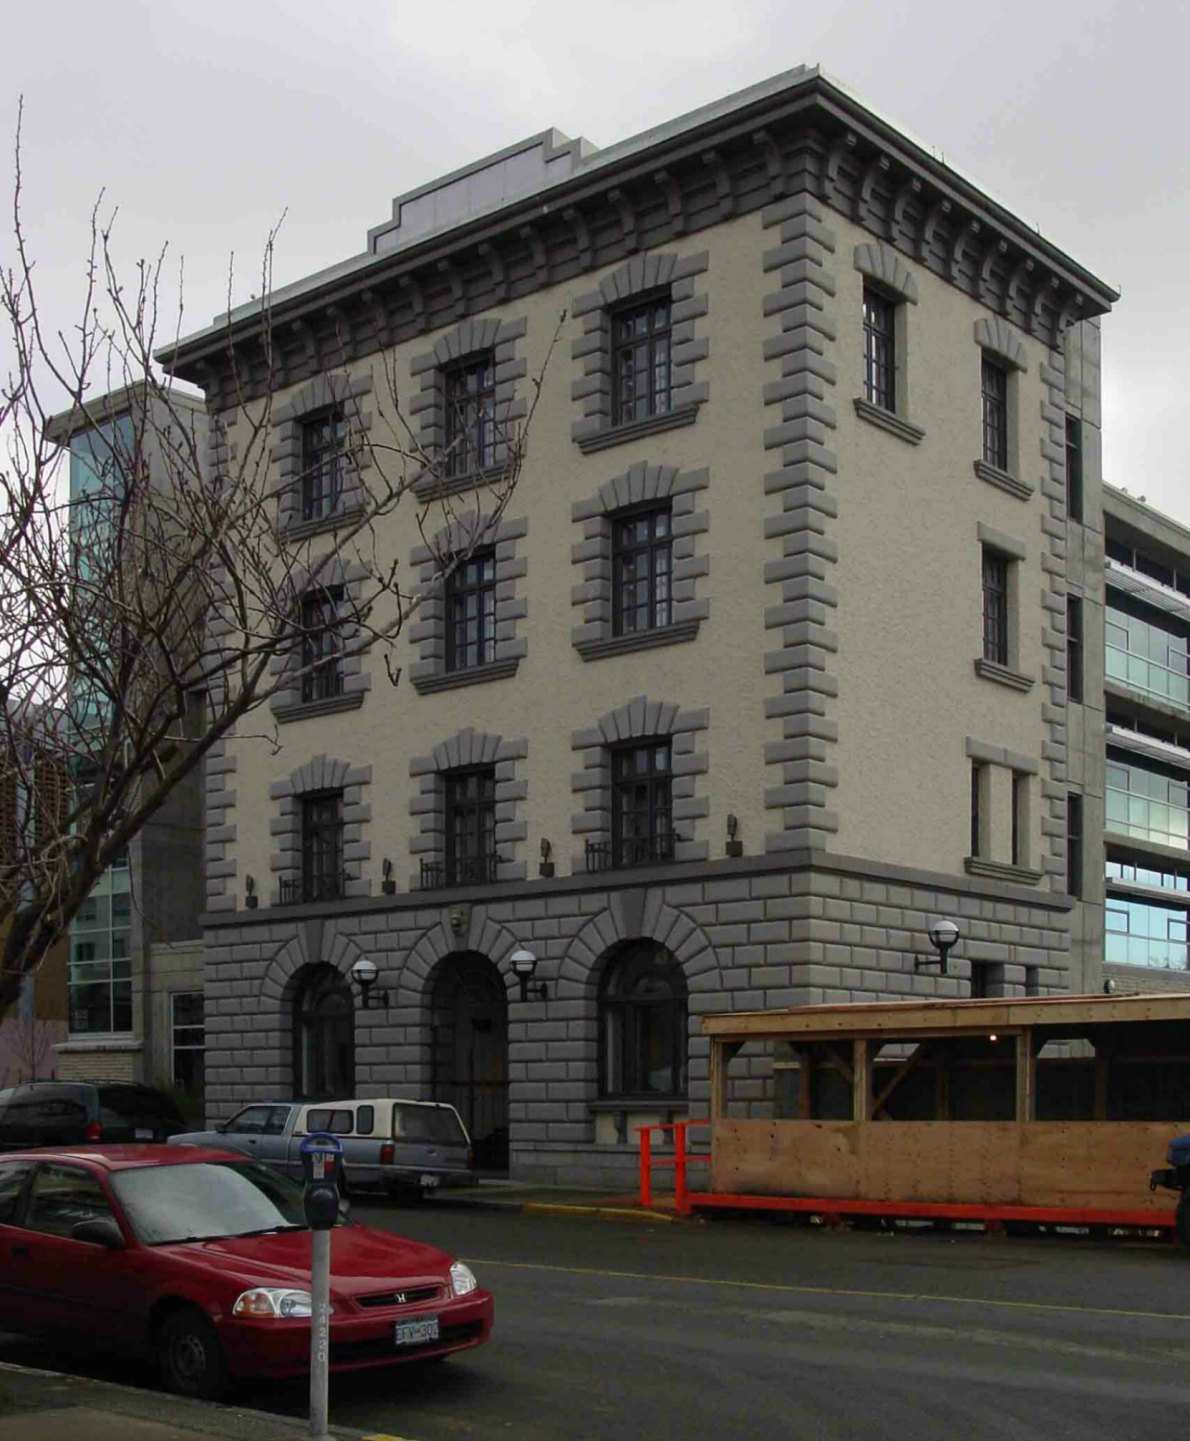 The former Victoria Police headquarters building, 625 Fisgard Street, in 2004 before its facade was incorporated into the C.R.D. building in Centennial Square.